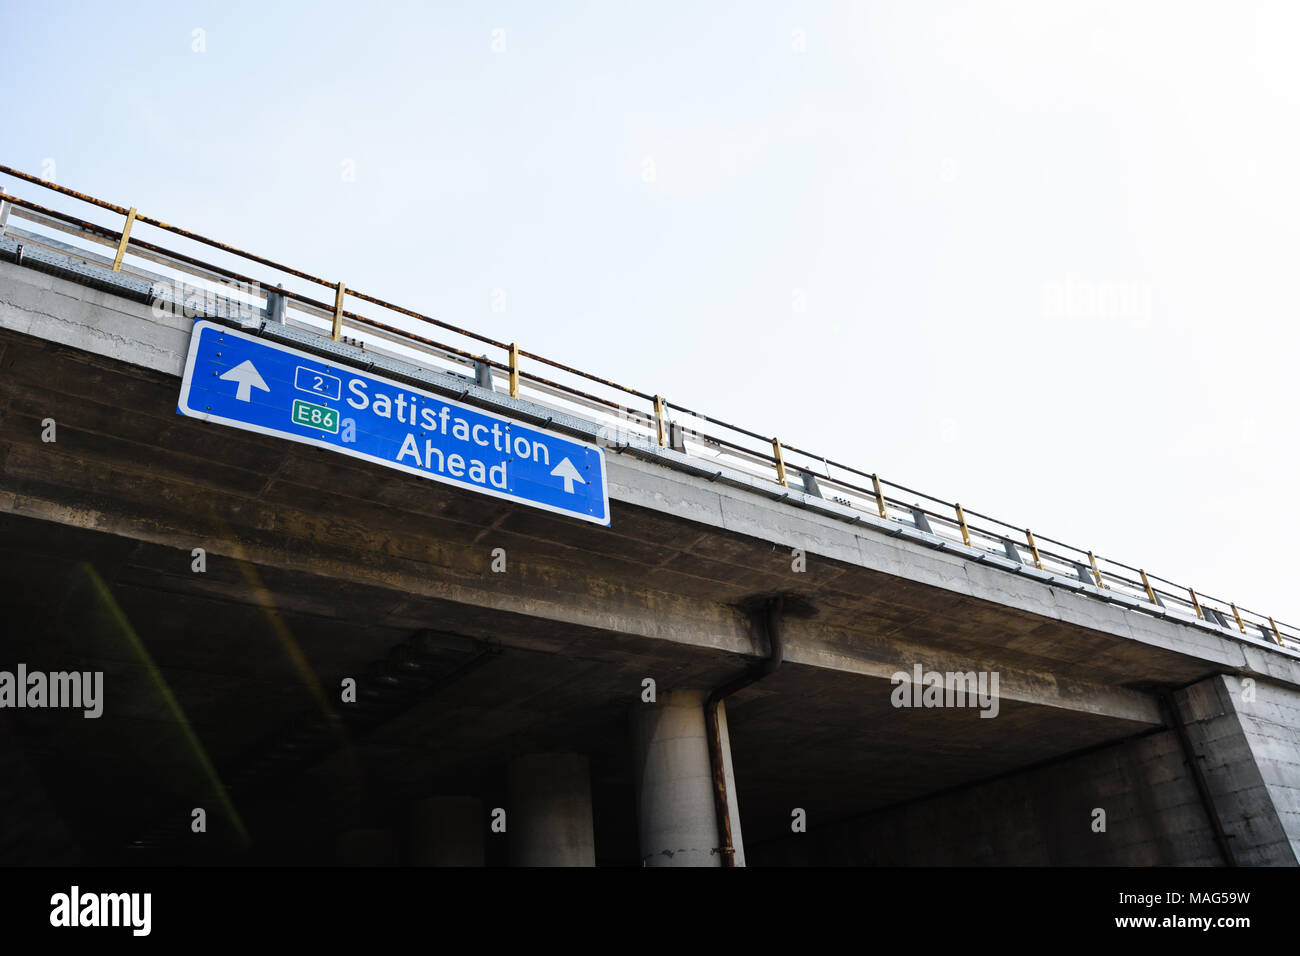 Satisfaction Ahead Blue Road Sign Against Clear Sky - Stock Image